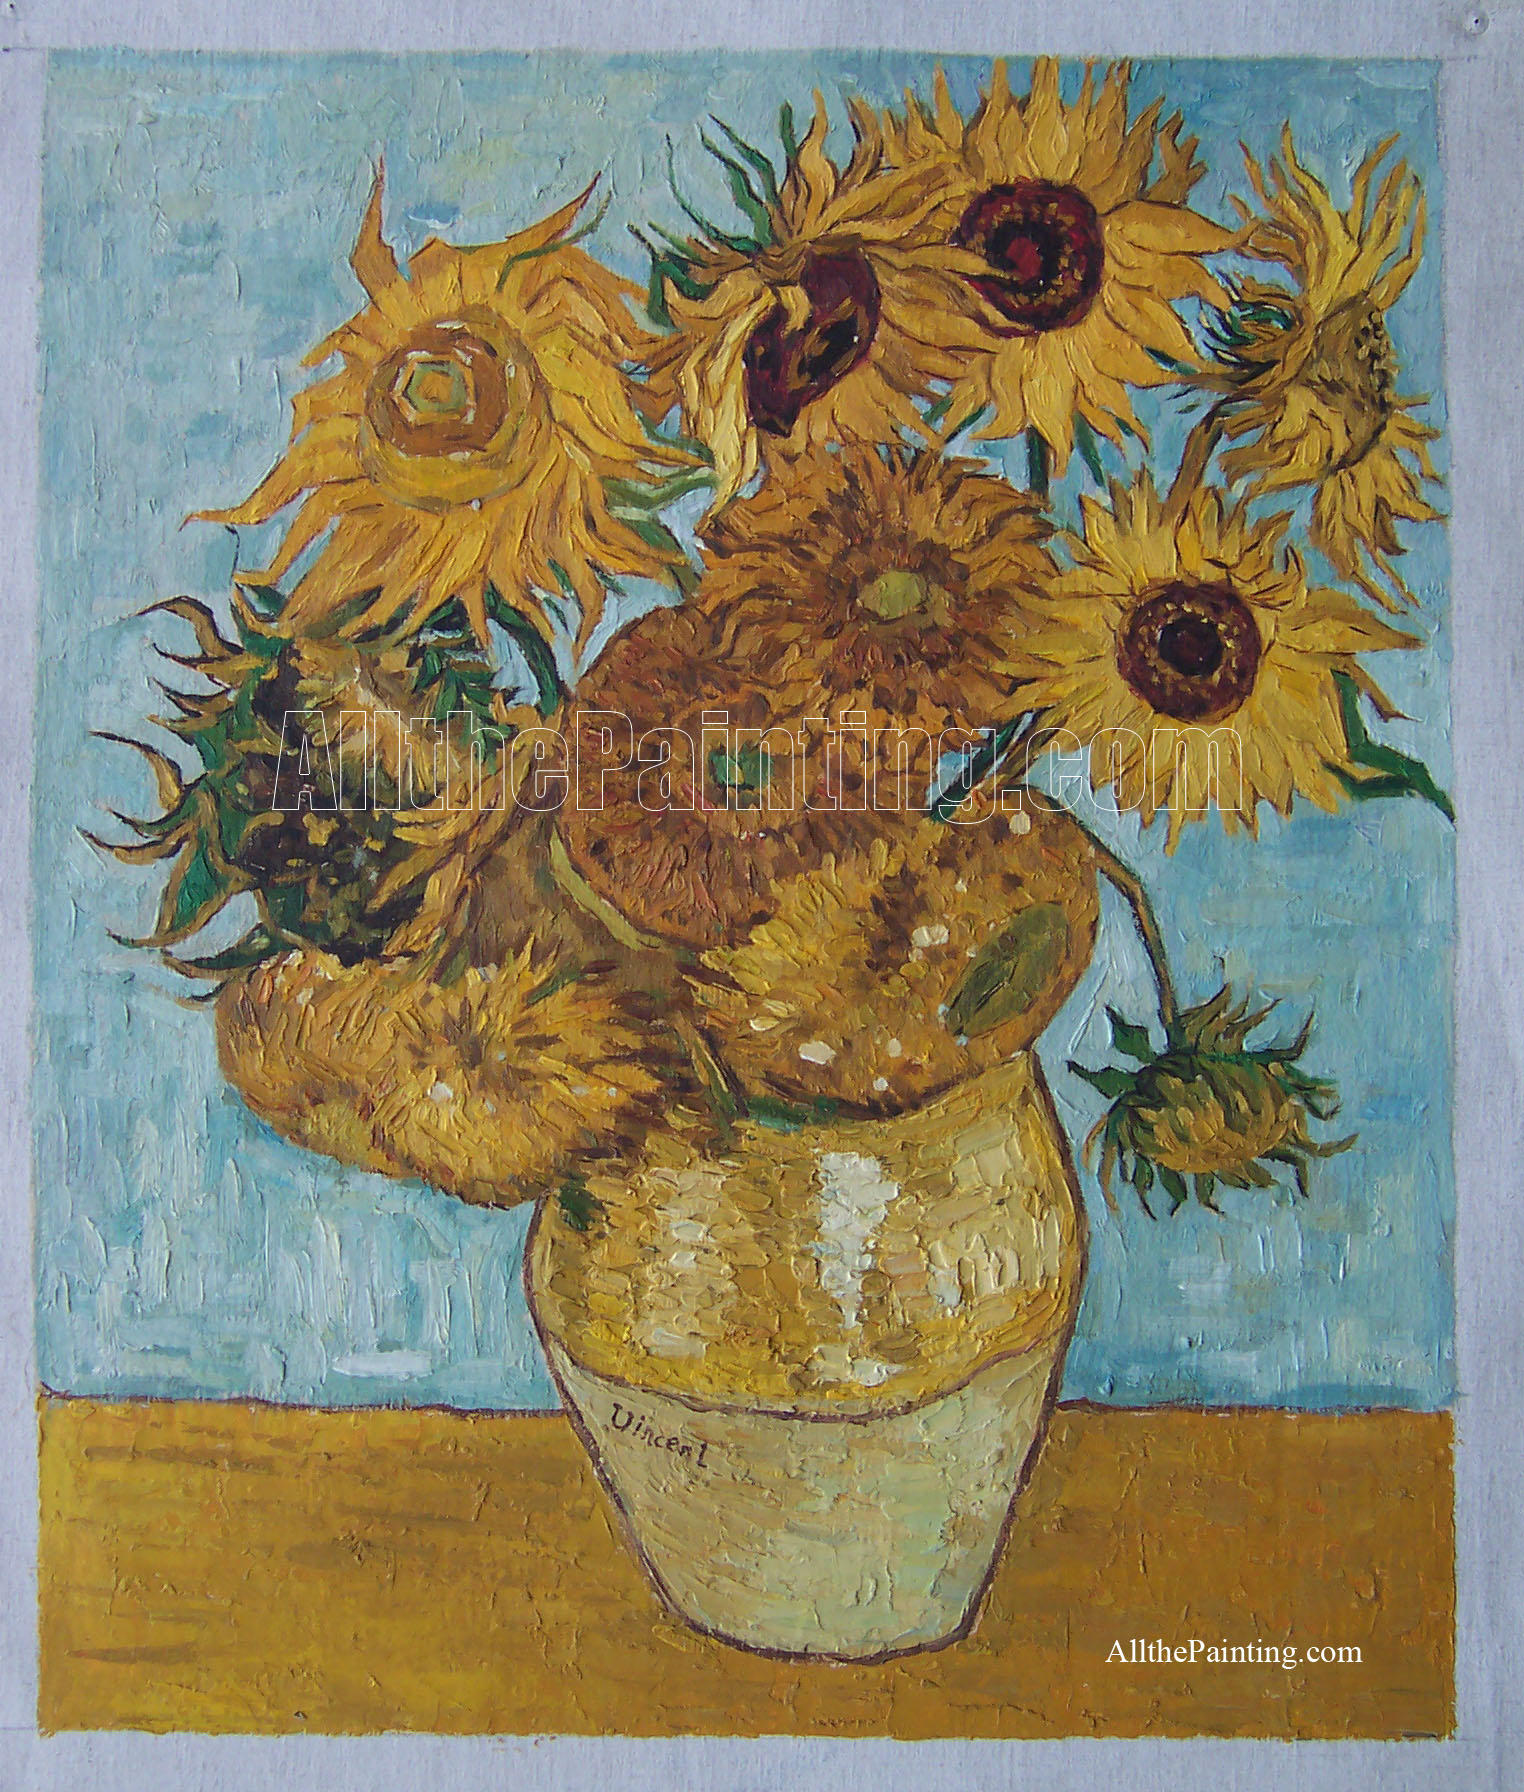 Vincent Van Gogh Paintings Sunflowers Famous Painting Reproduction All The Painting